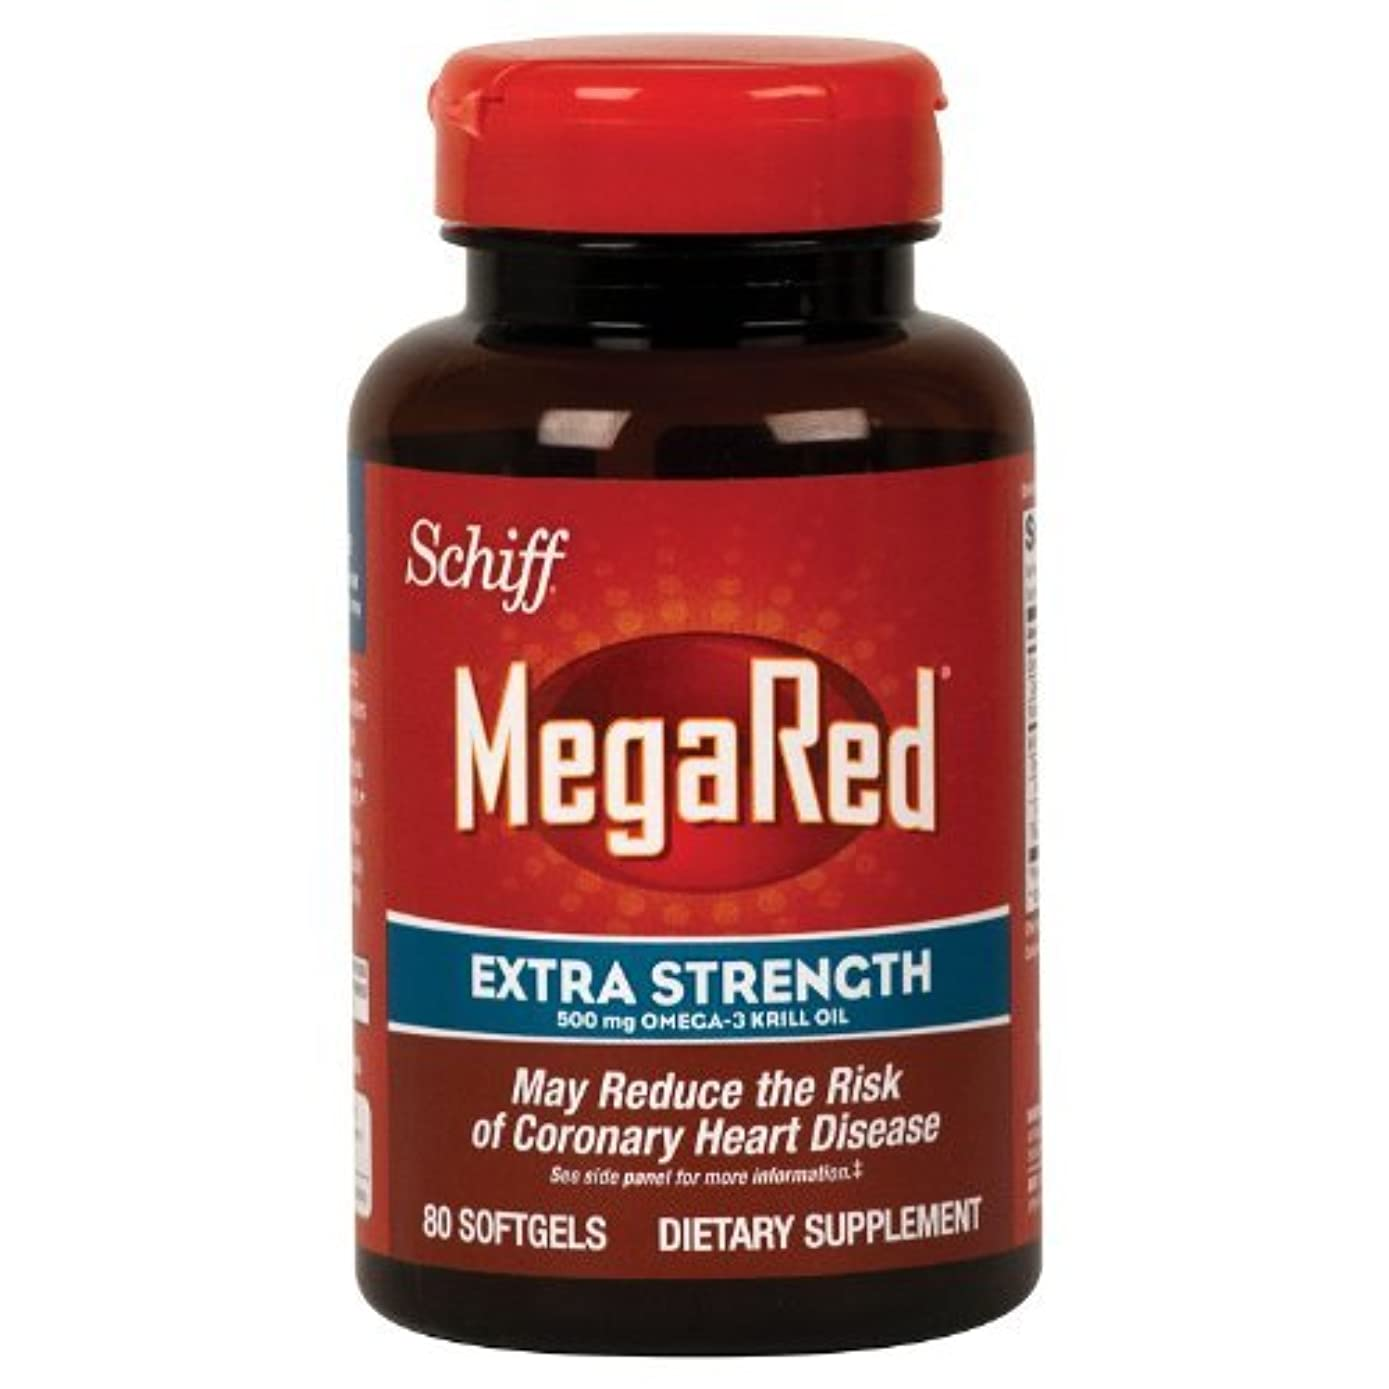 狂う白菜厚さSchiff Megared Extra Strength 500mg Omega-3 Krill Oil - 80 Softgels by Simply Right [並行輸入品]